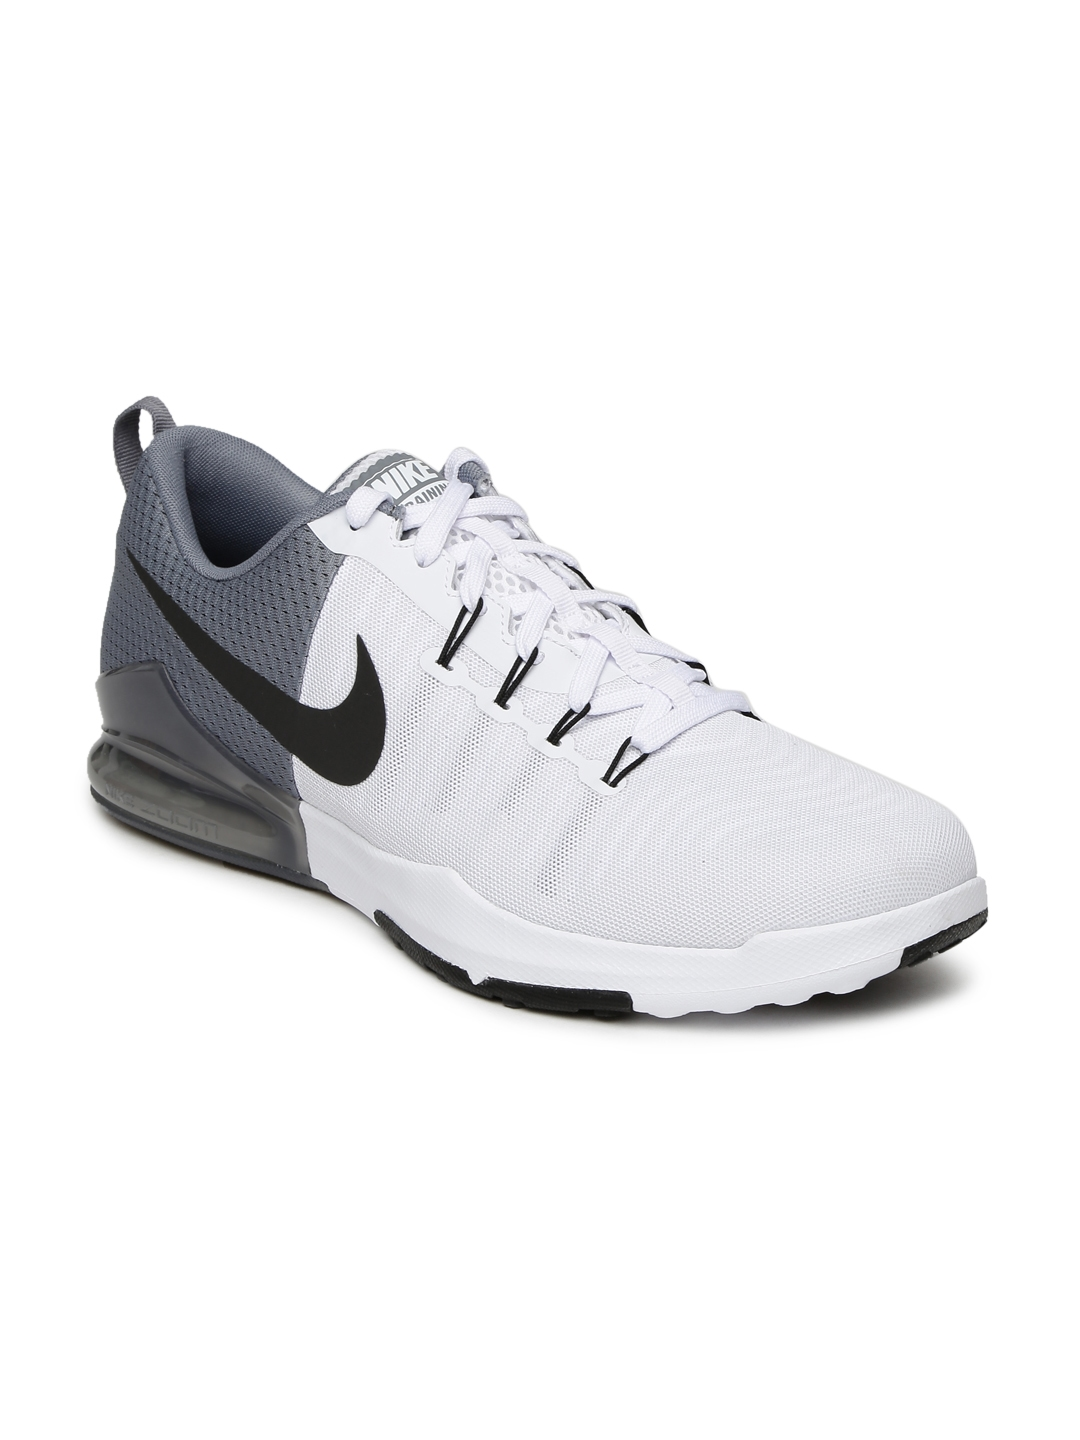 0f6c83fa020b Buy Nike Men White Zoom Train Action Training Shoes - Sports Shoes ...